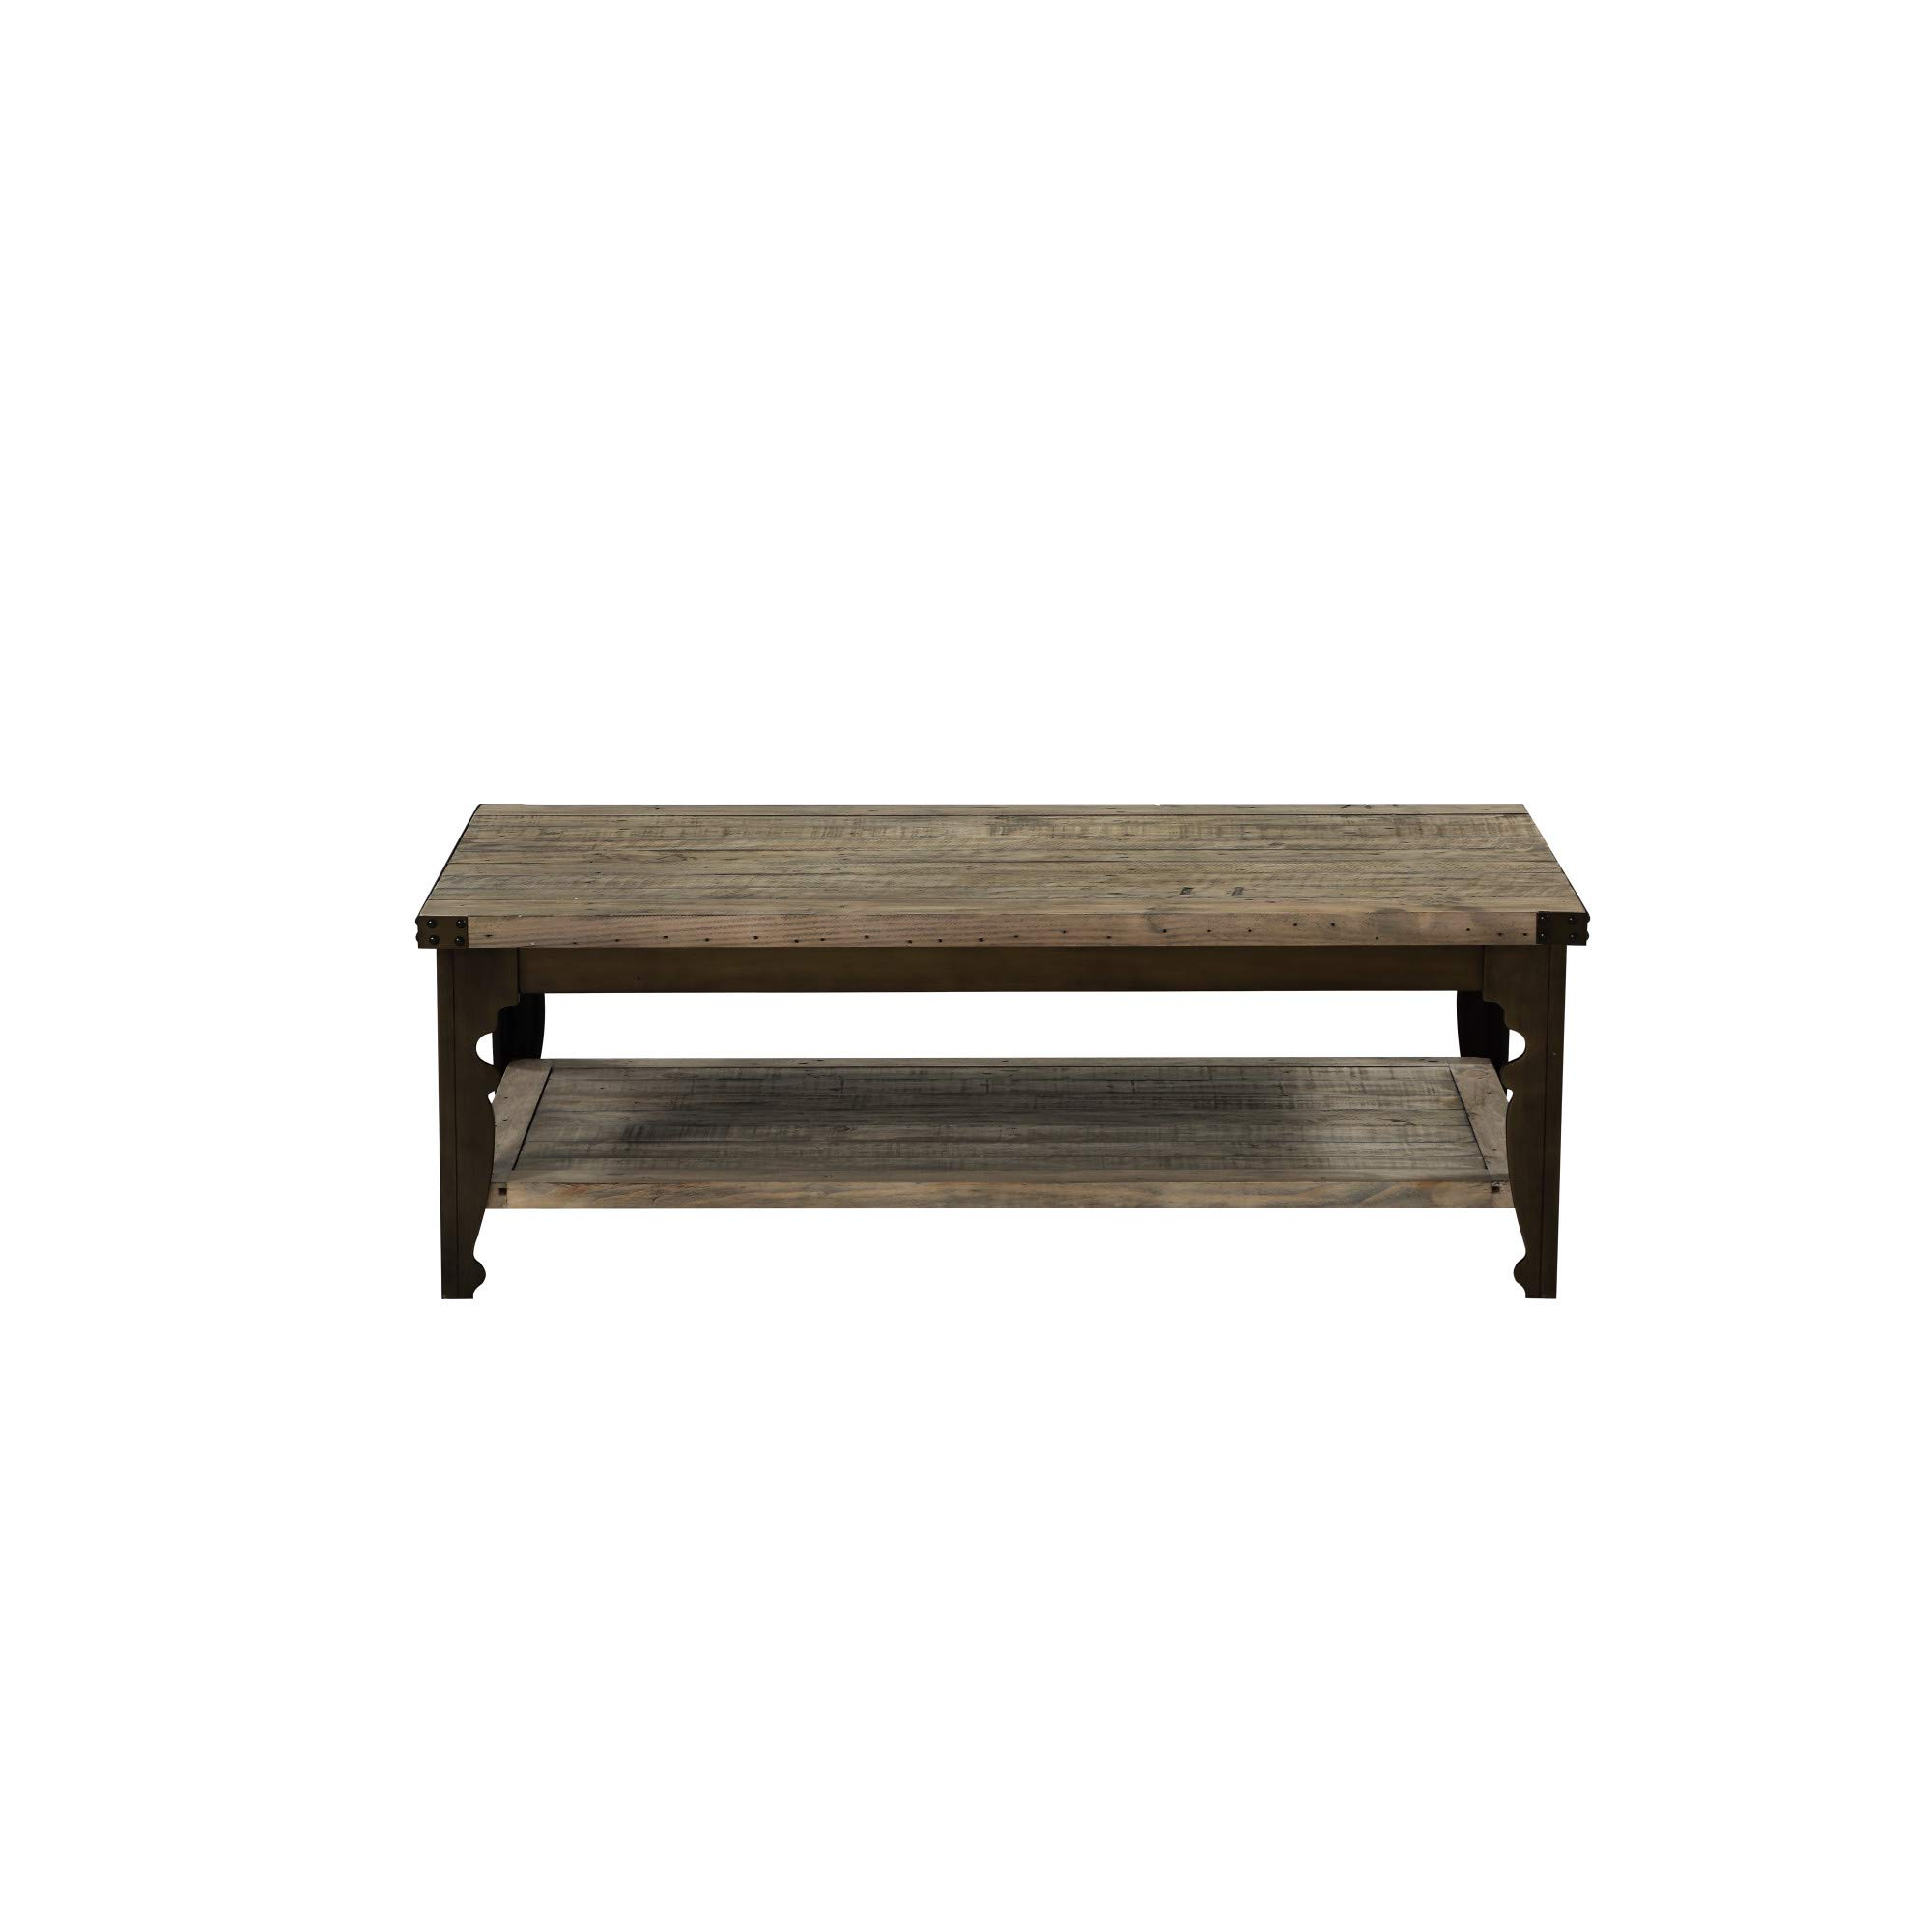 Verona 52'' Coffee Table in Natural Pine with Plank Style Top And Open Shelf, by Artum Hill